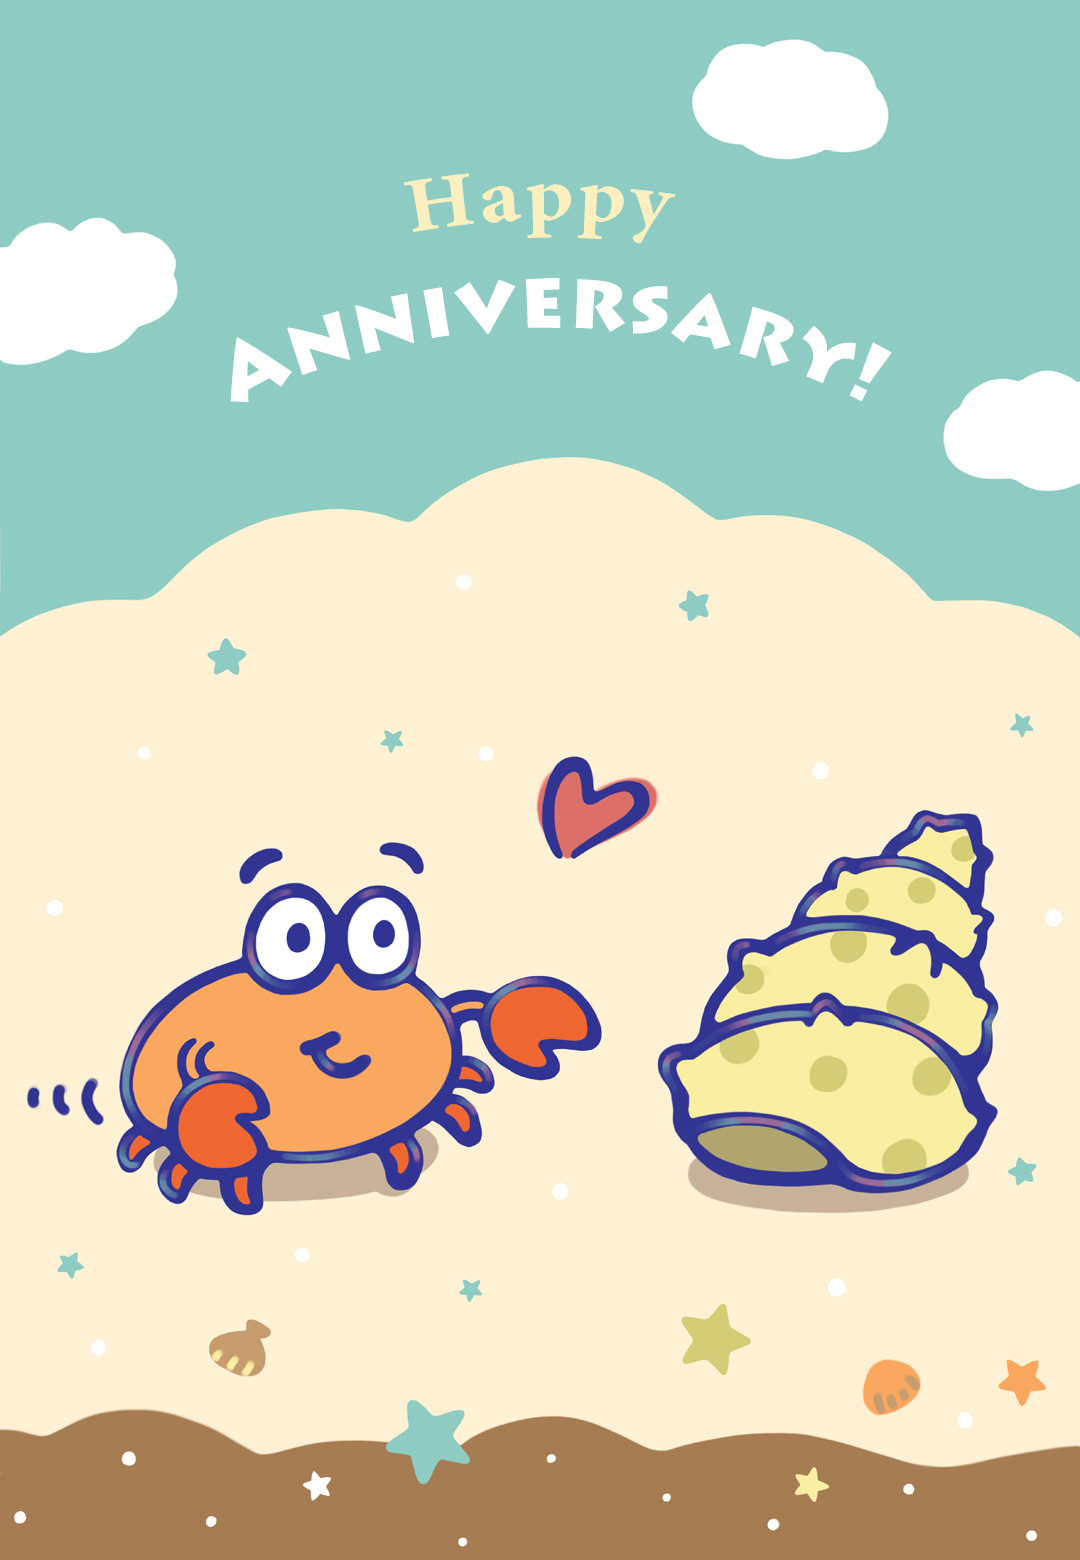 When I Found You - Free Happy Anniversary Card | Greetings Island - Printable Cards Free Anniversary